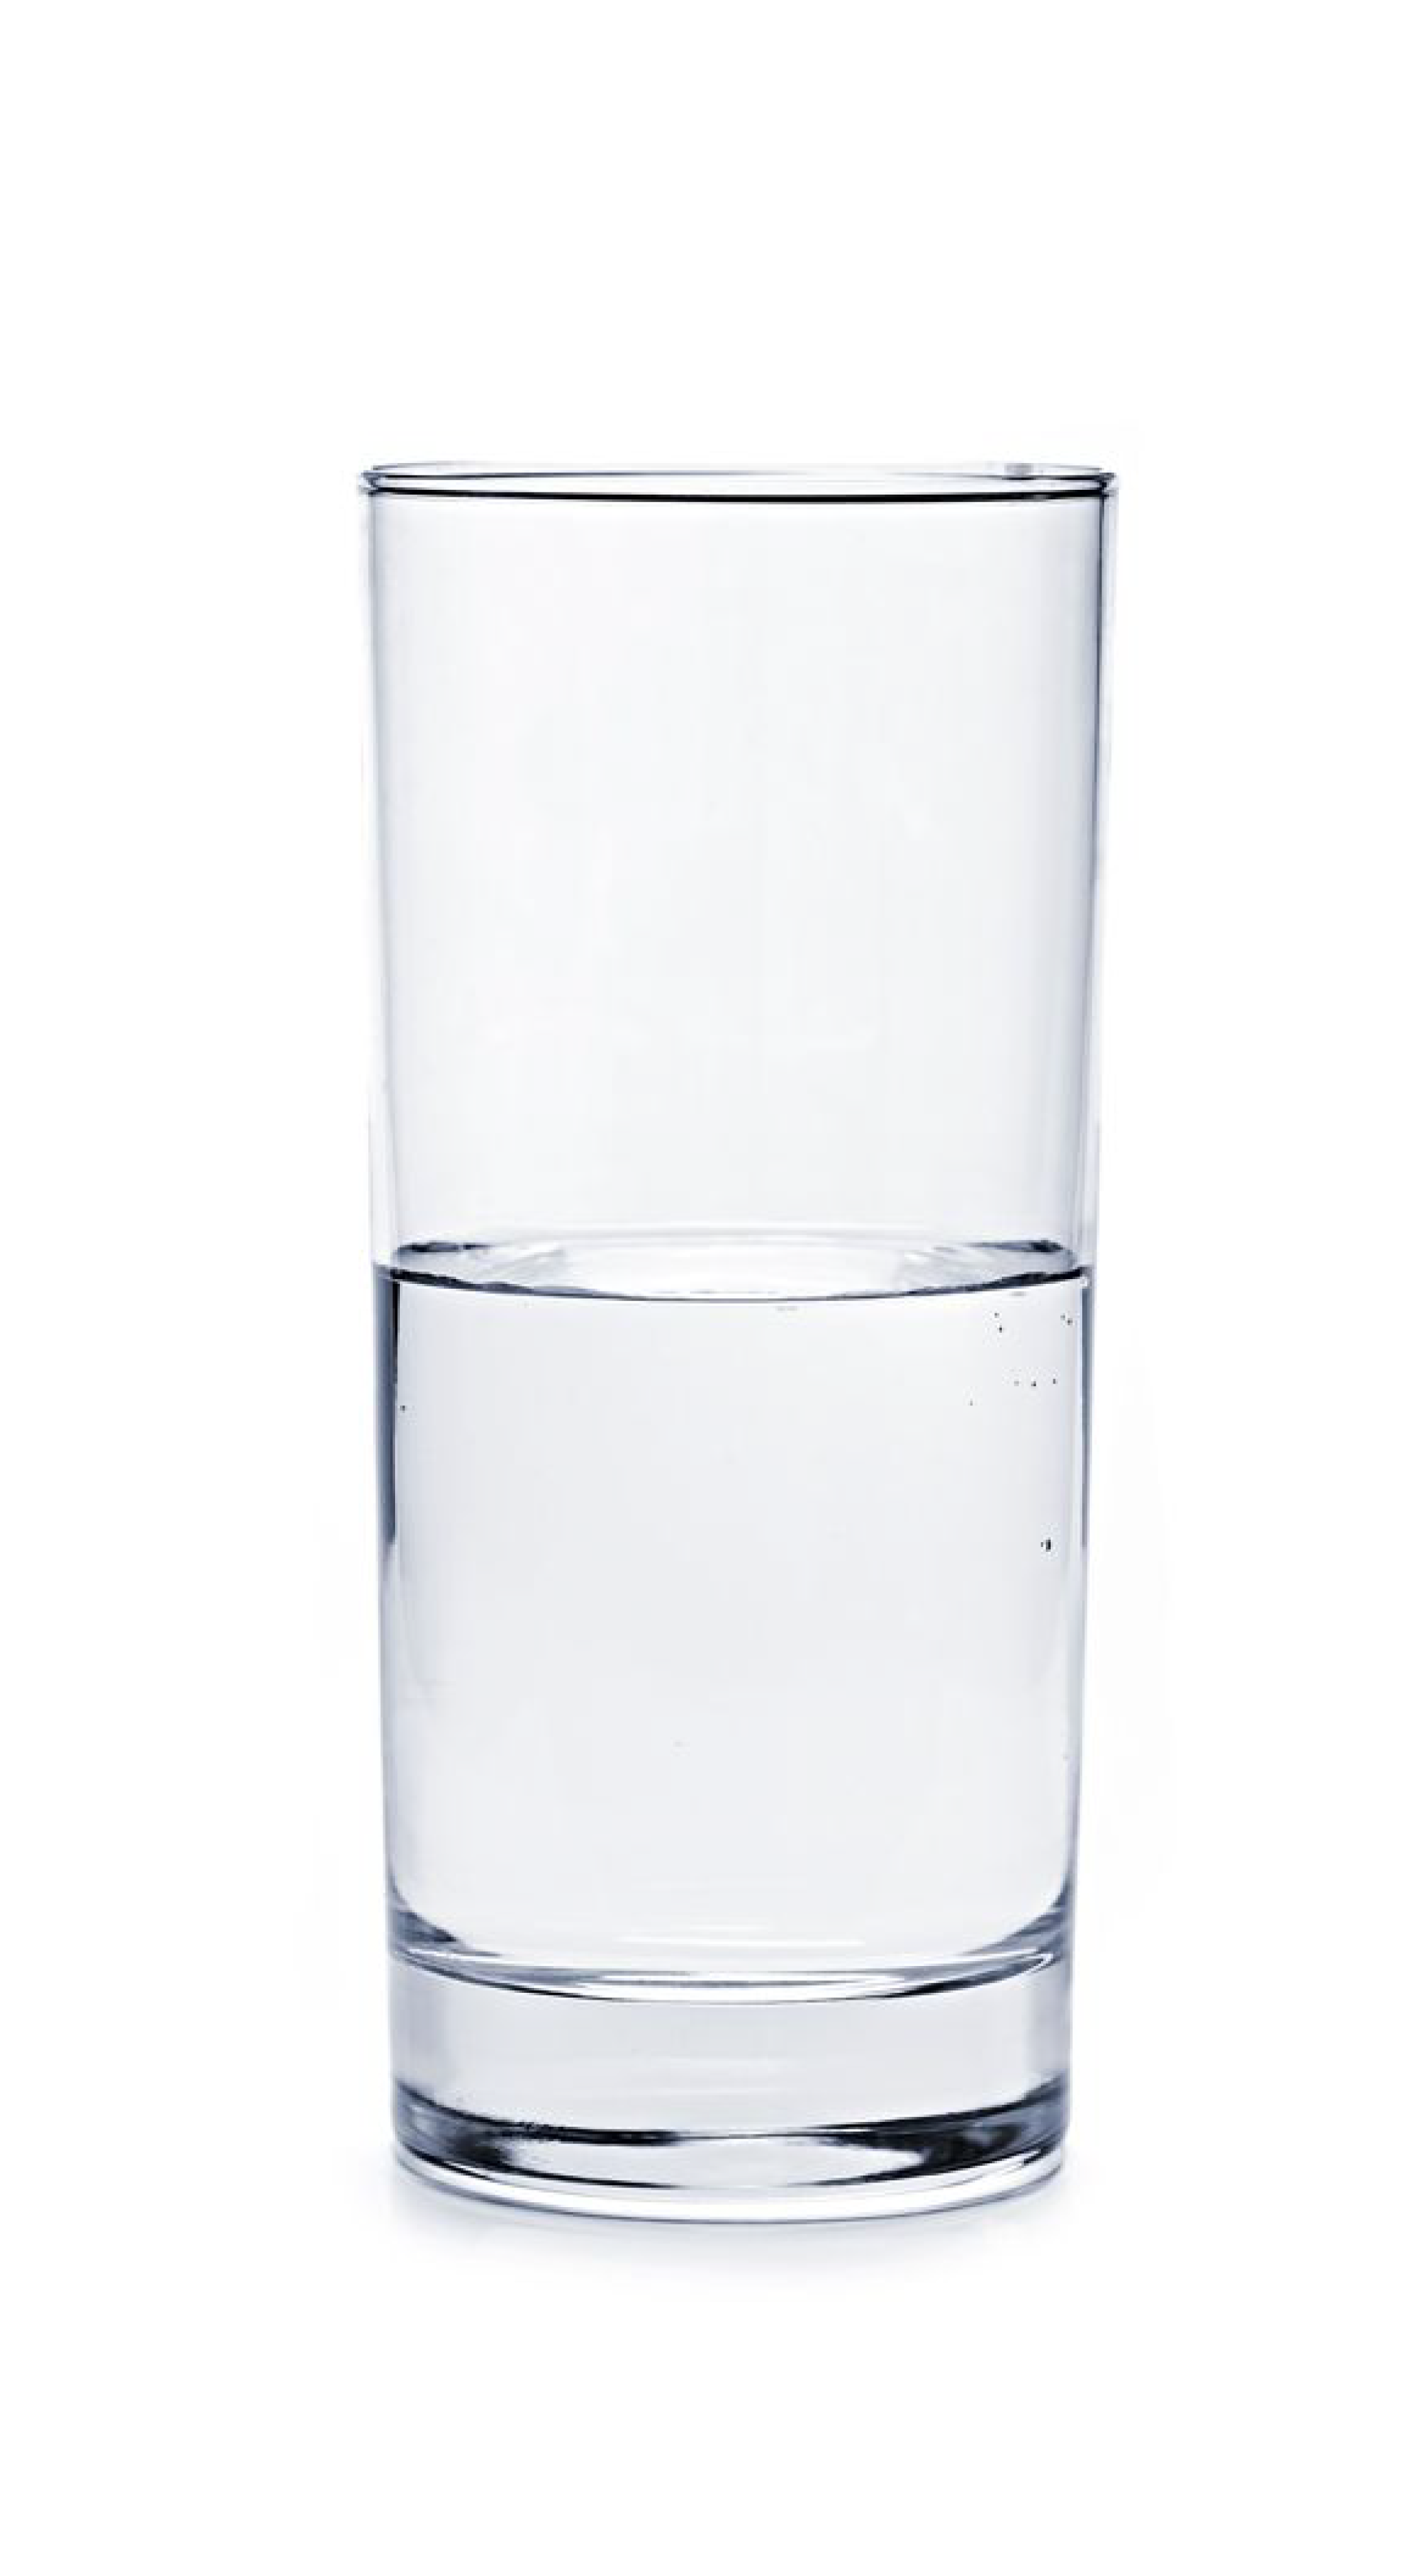 Is the glass half empty or half full? Cup Water Optimism.